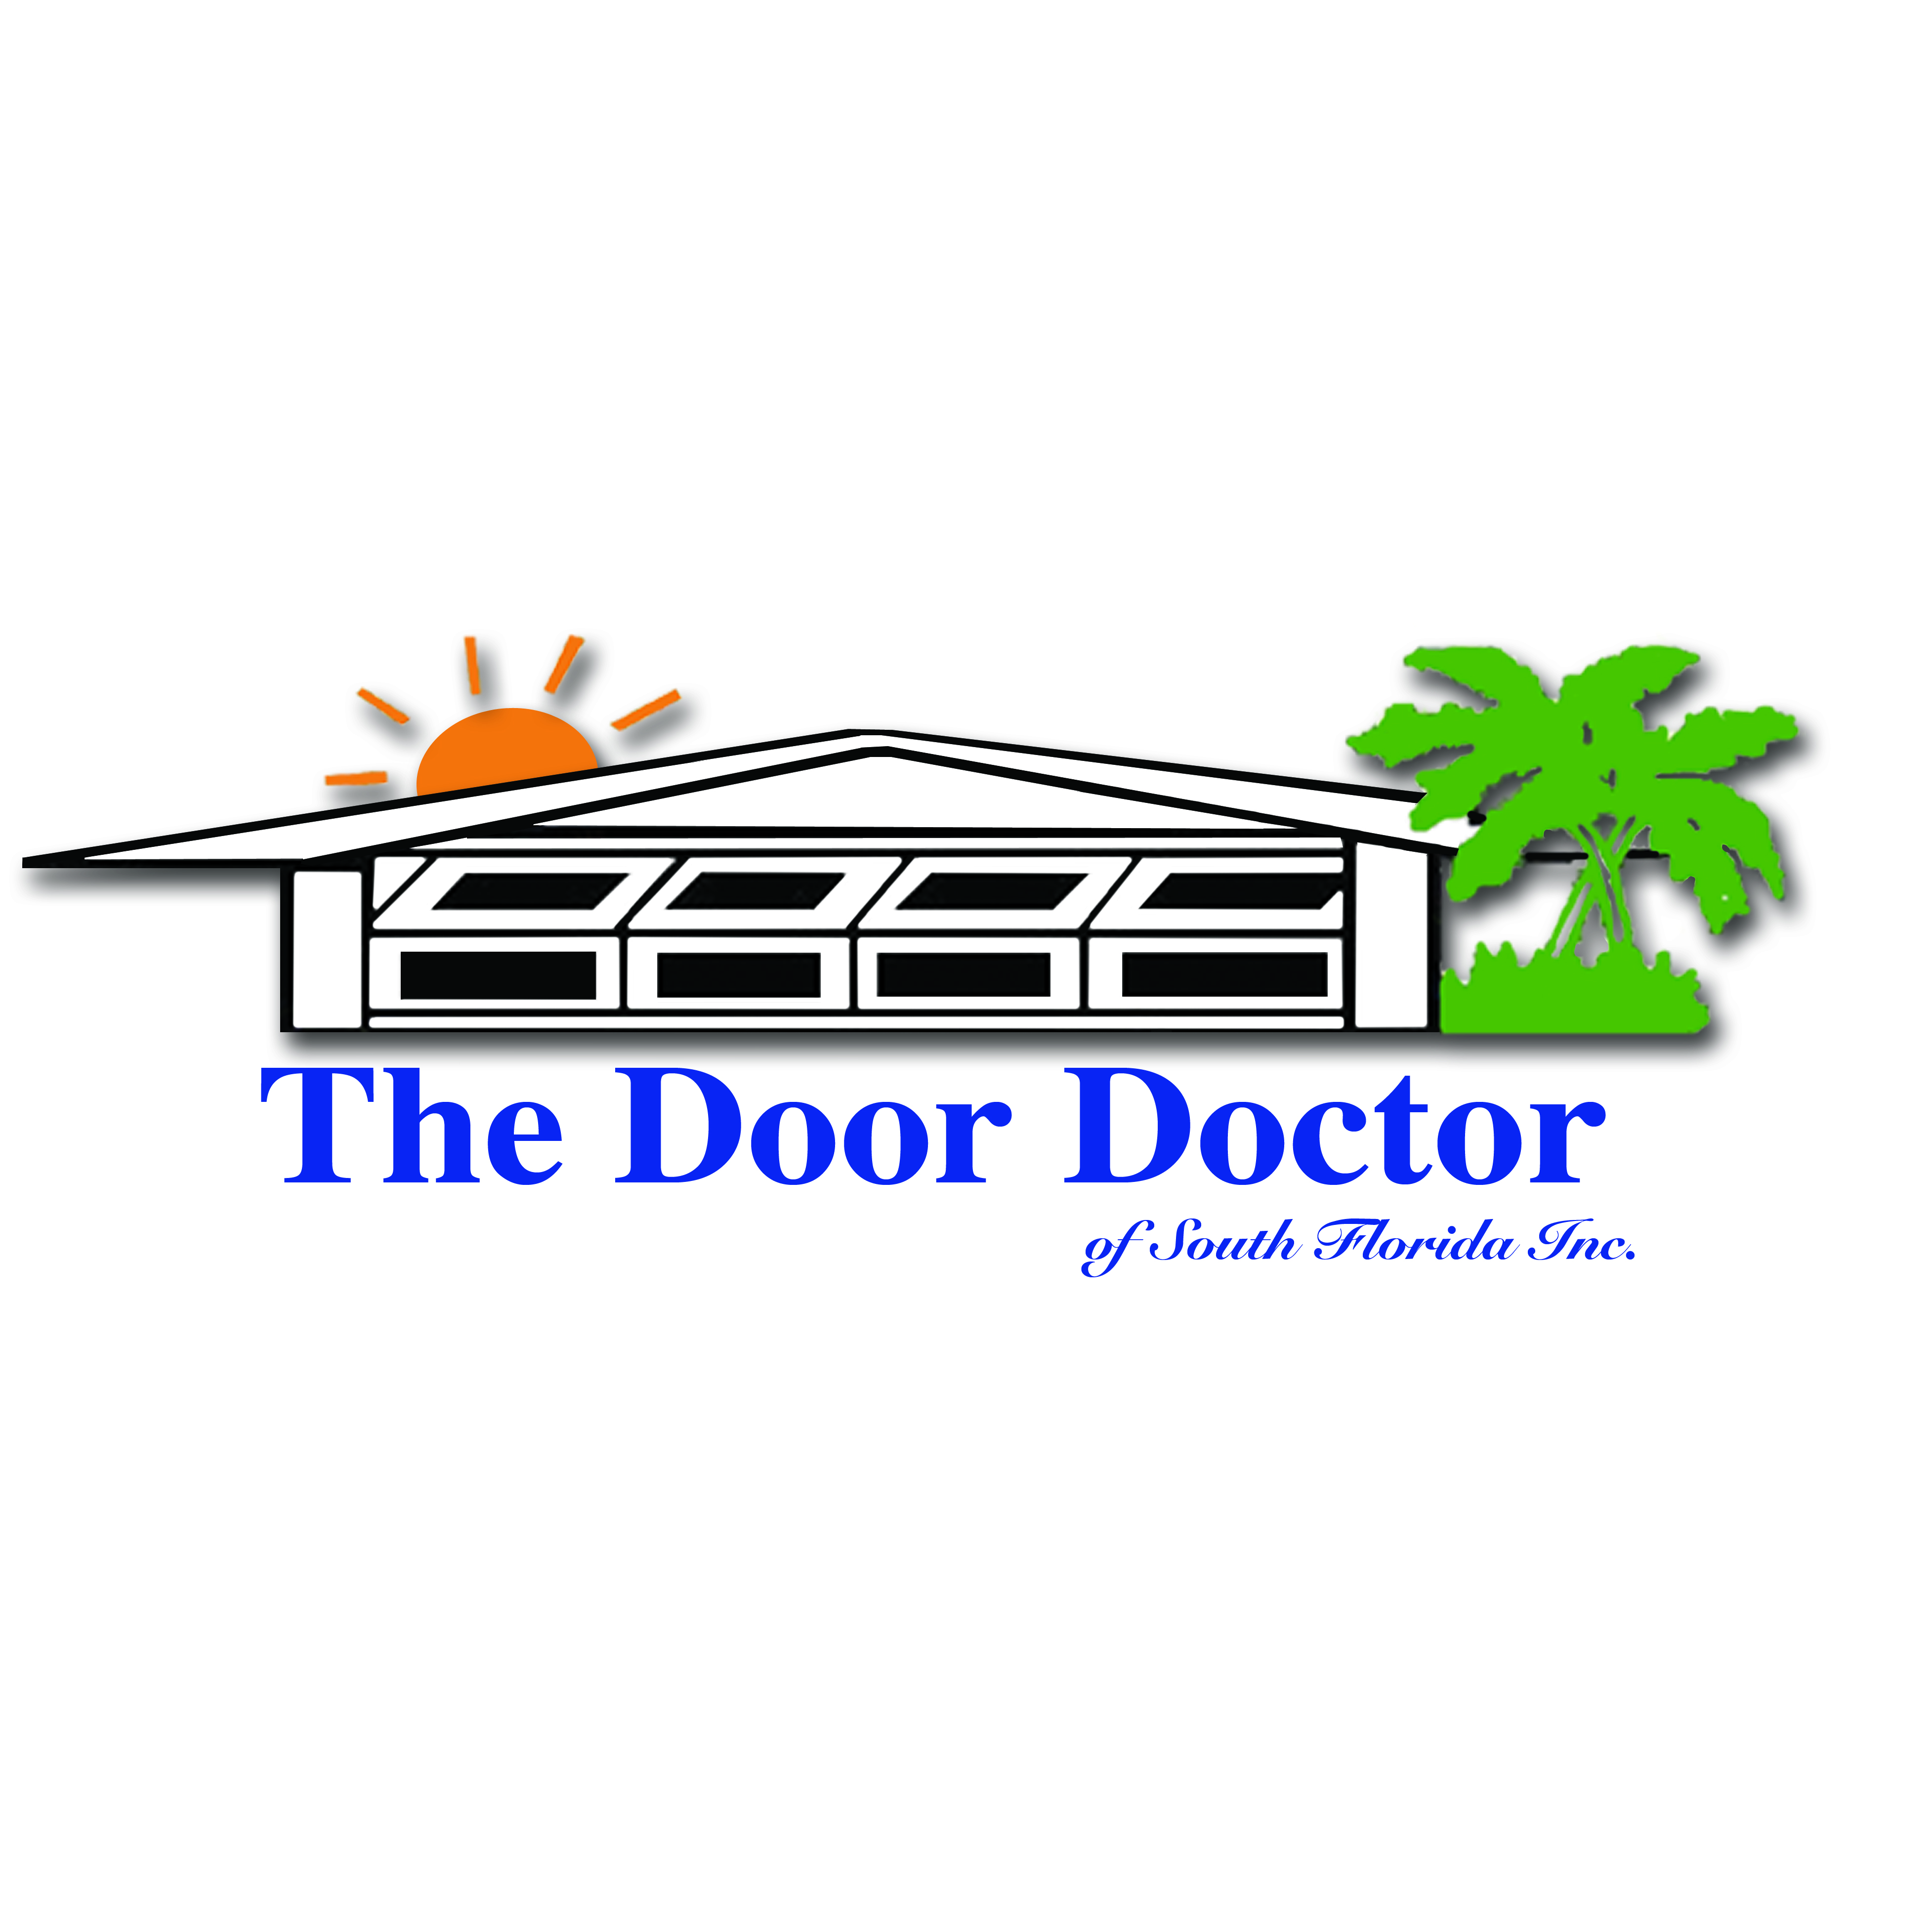 The Door Doctor of South Florida, Inc.